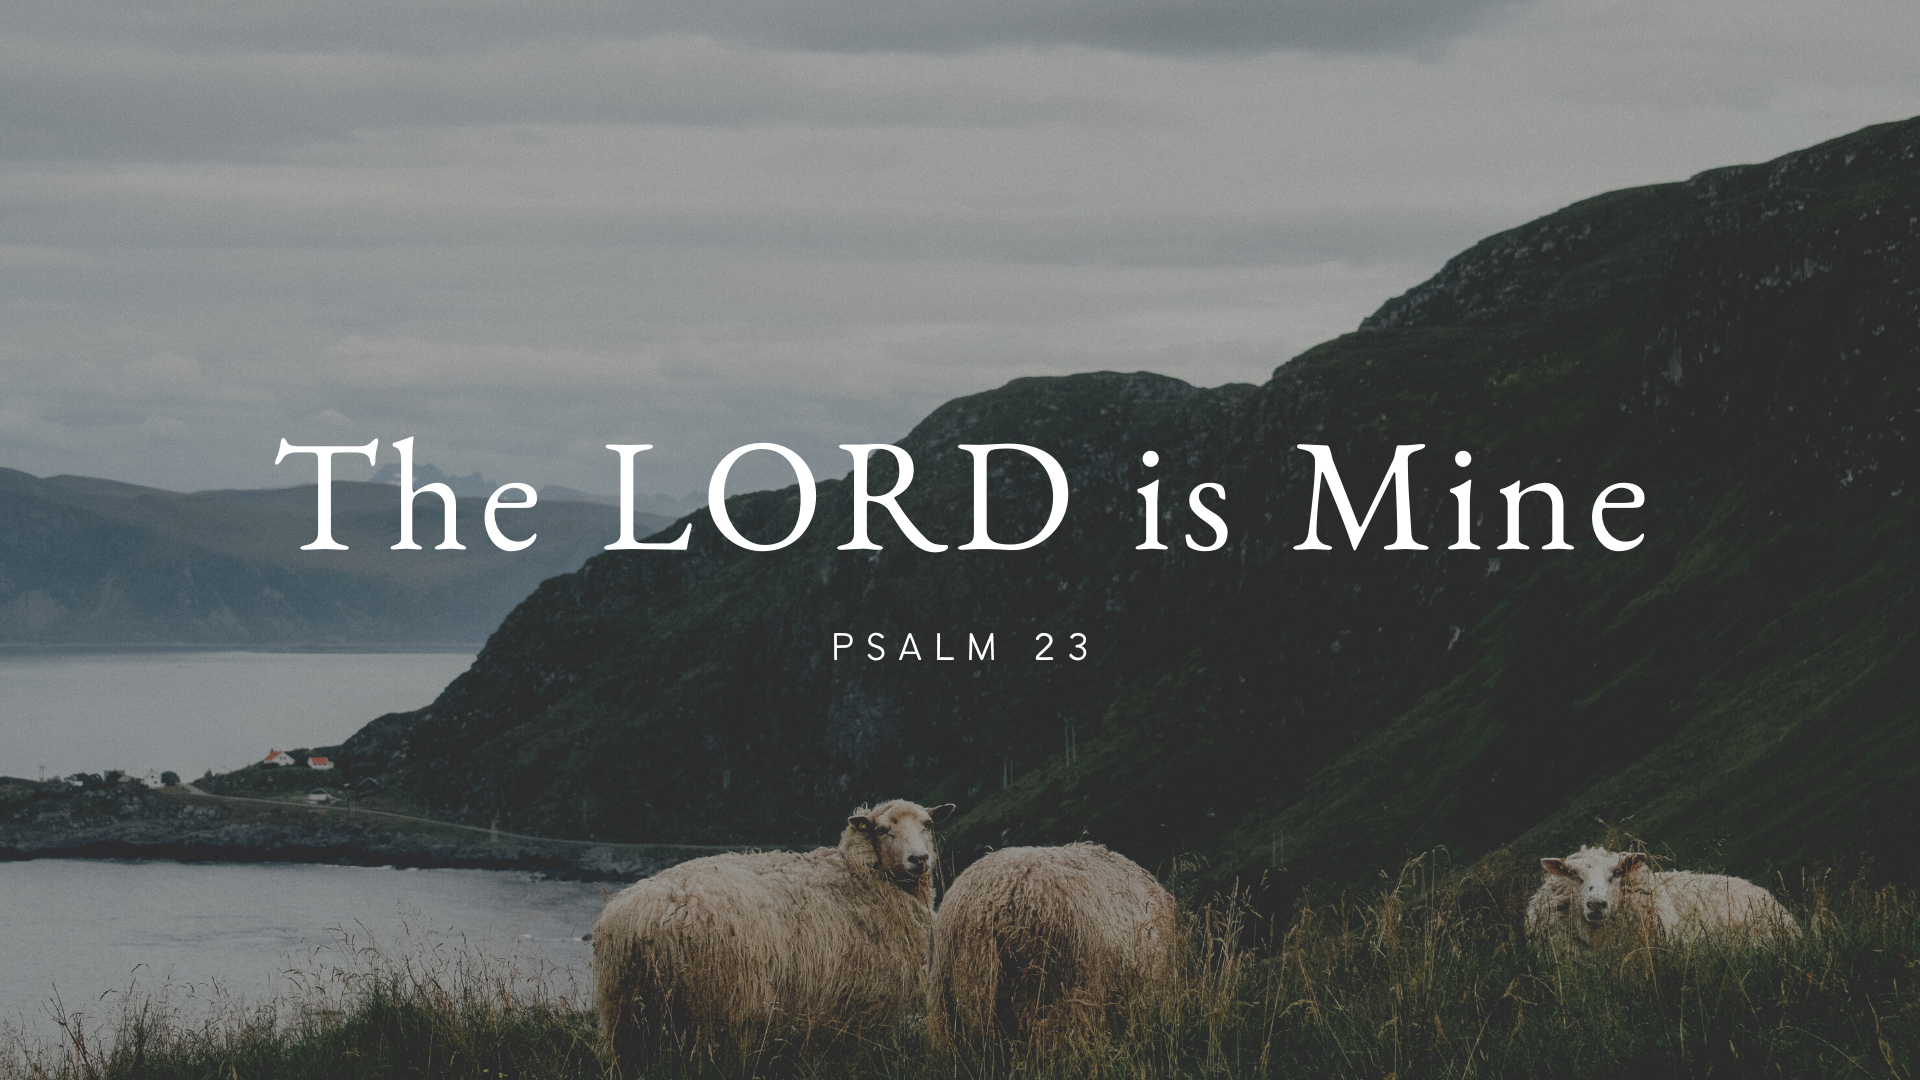 The LORD is Mine (Psalm 23)